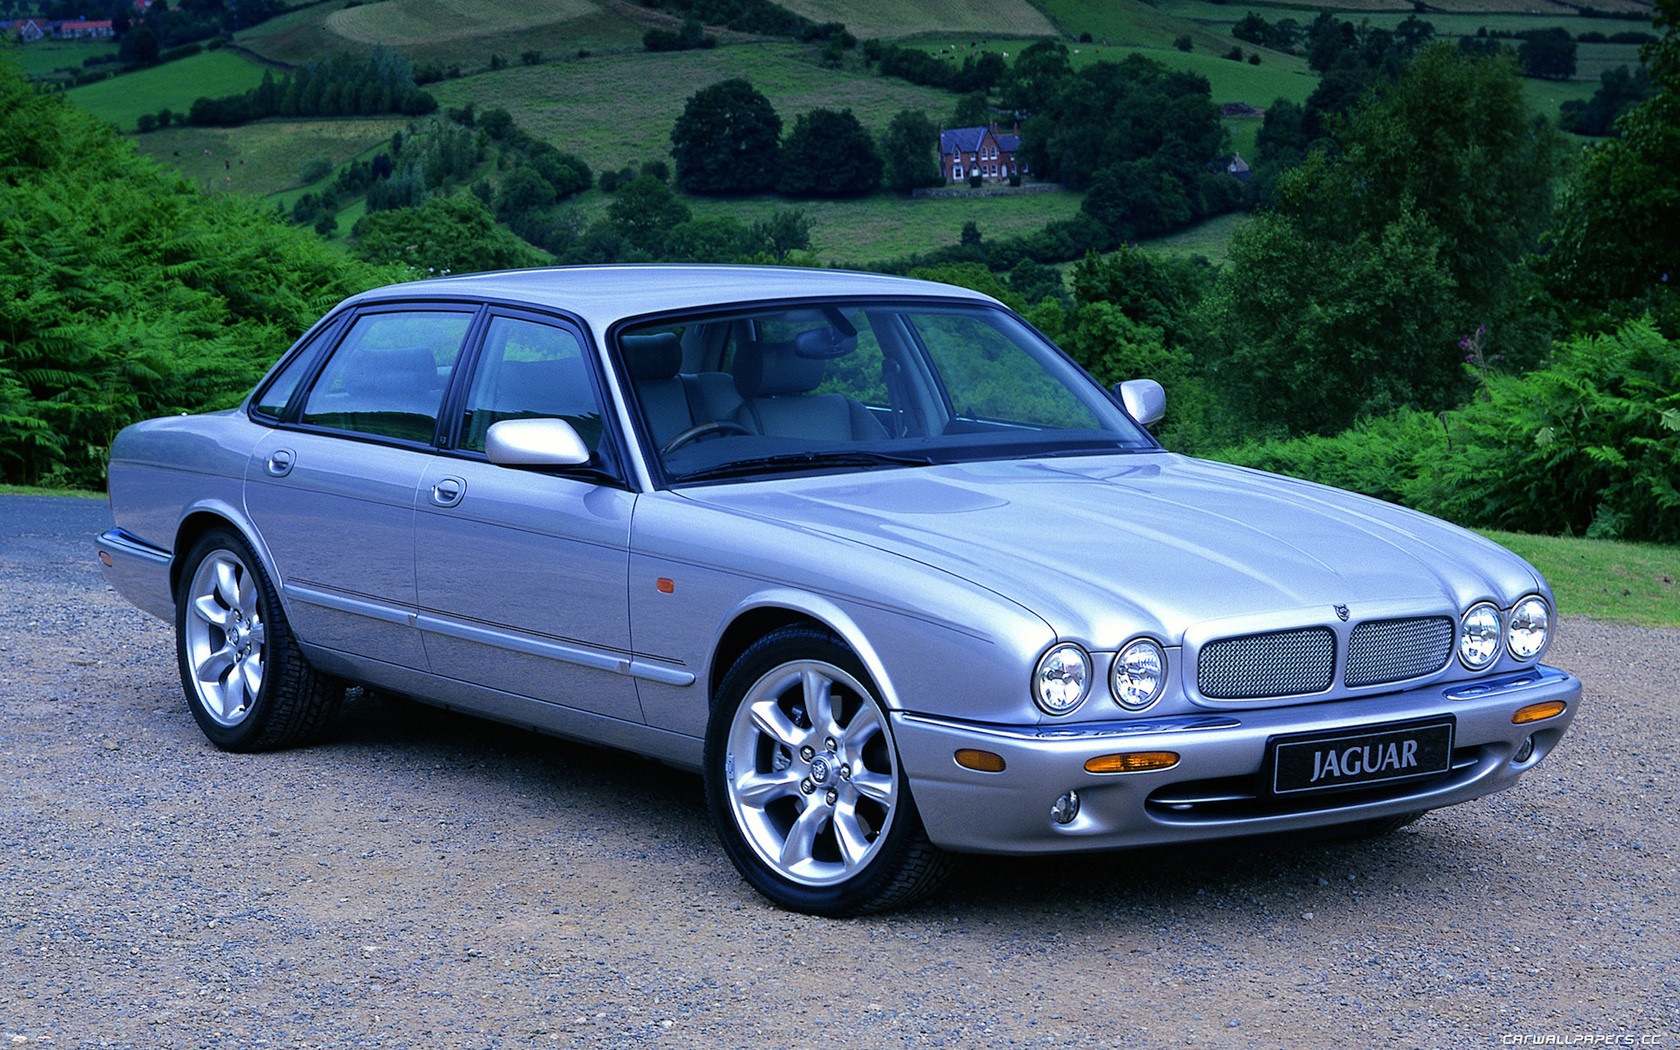 1996 jaguar xjr information and photos zombiedrive. Black Bedroom Furniture Sets. Home Design Ideas